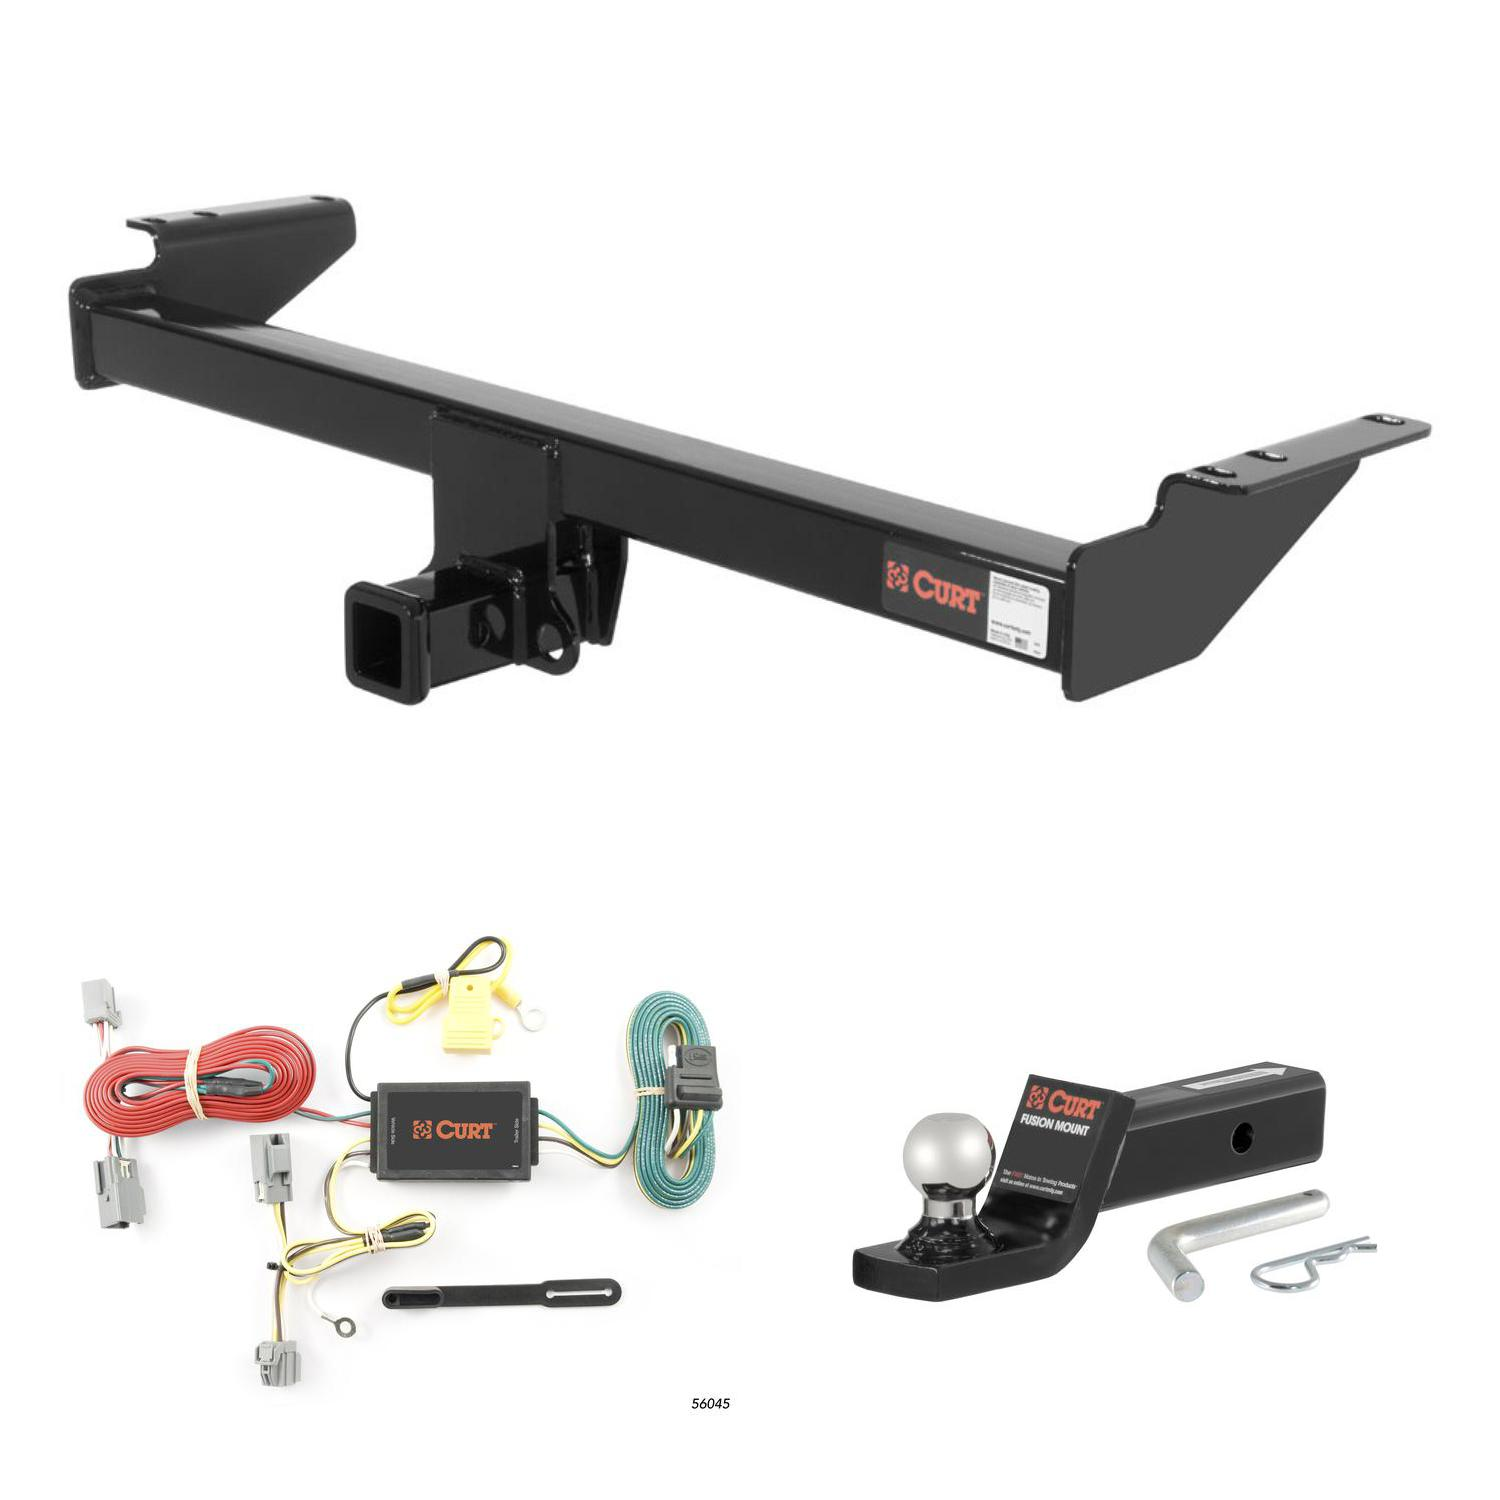 Cool Curt Trailer Hitch Wiring 1 7 8 Ball Mount W 2 Drop For 05 14 Wiring 101 Relewellnesstrialsorg